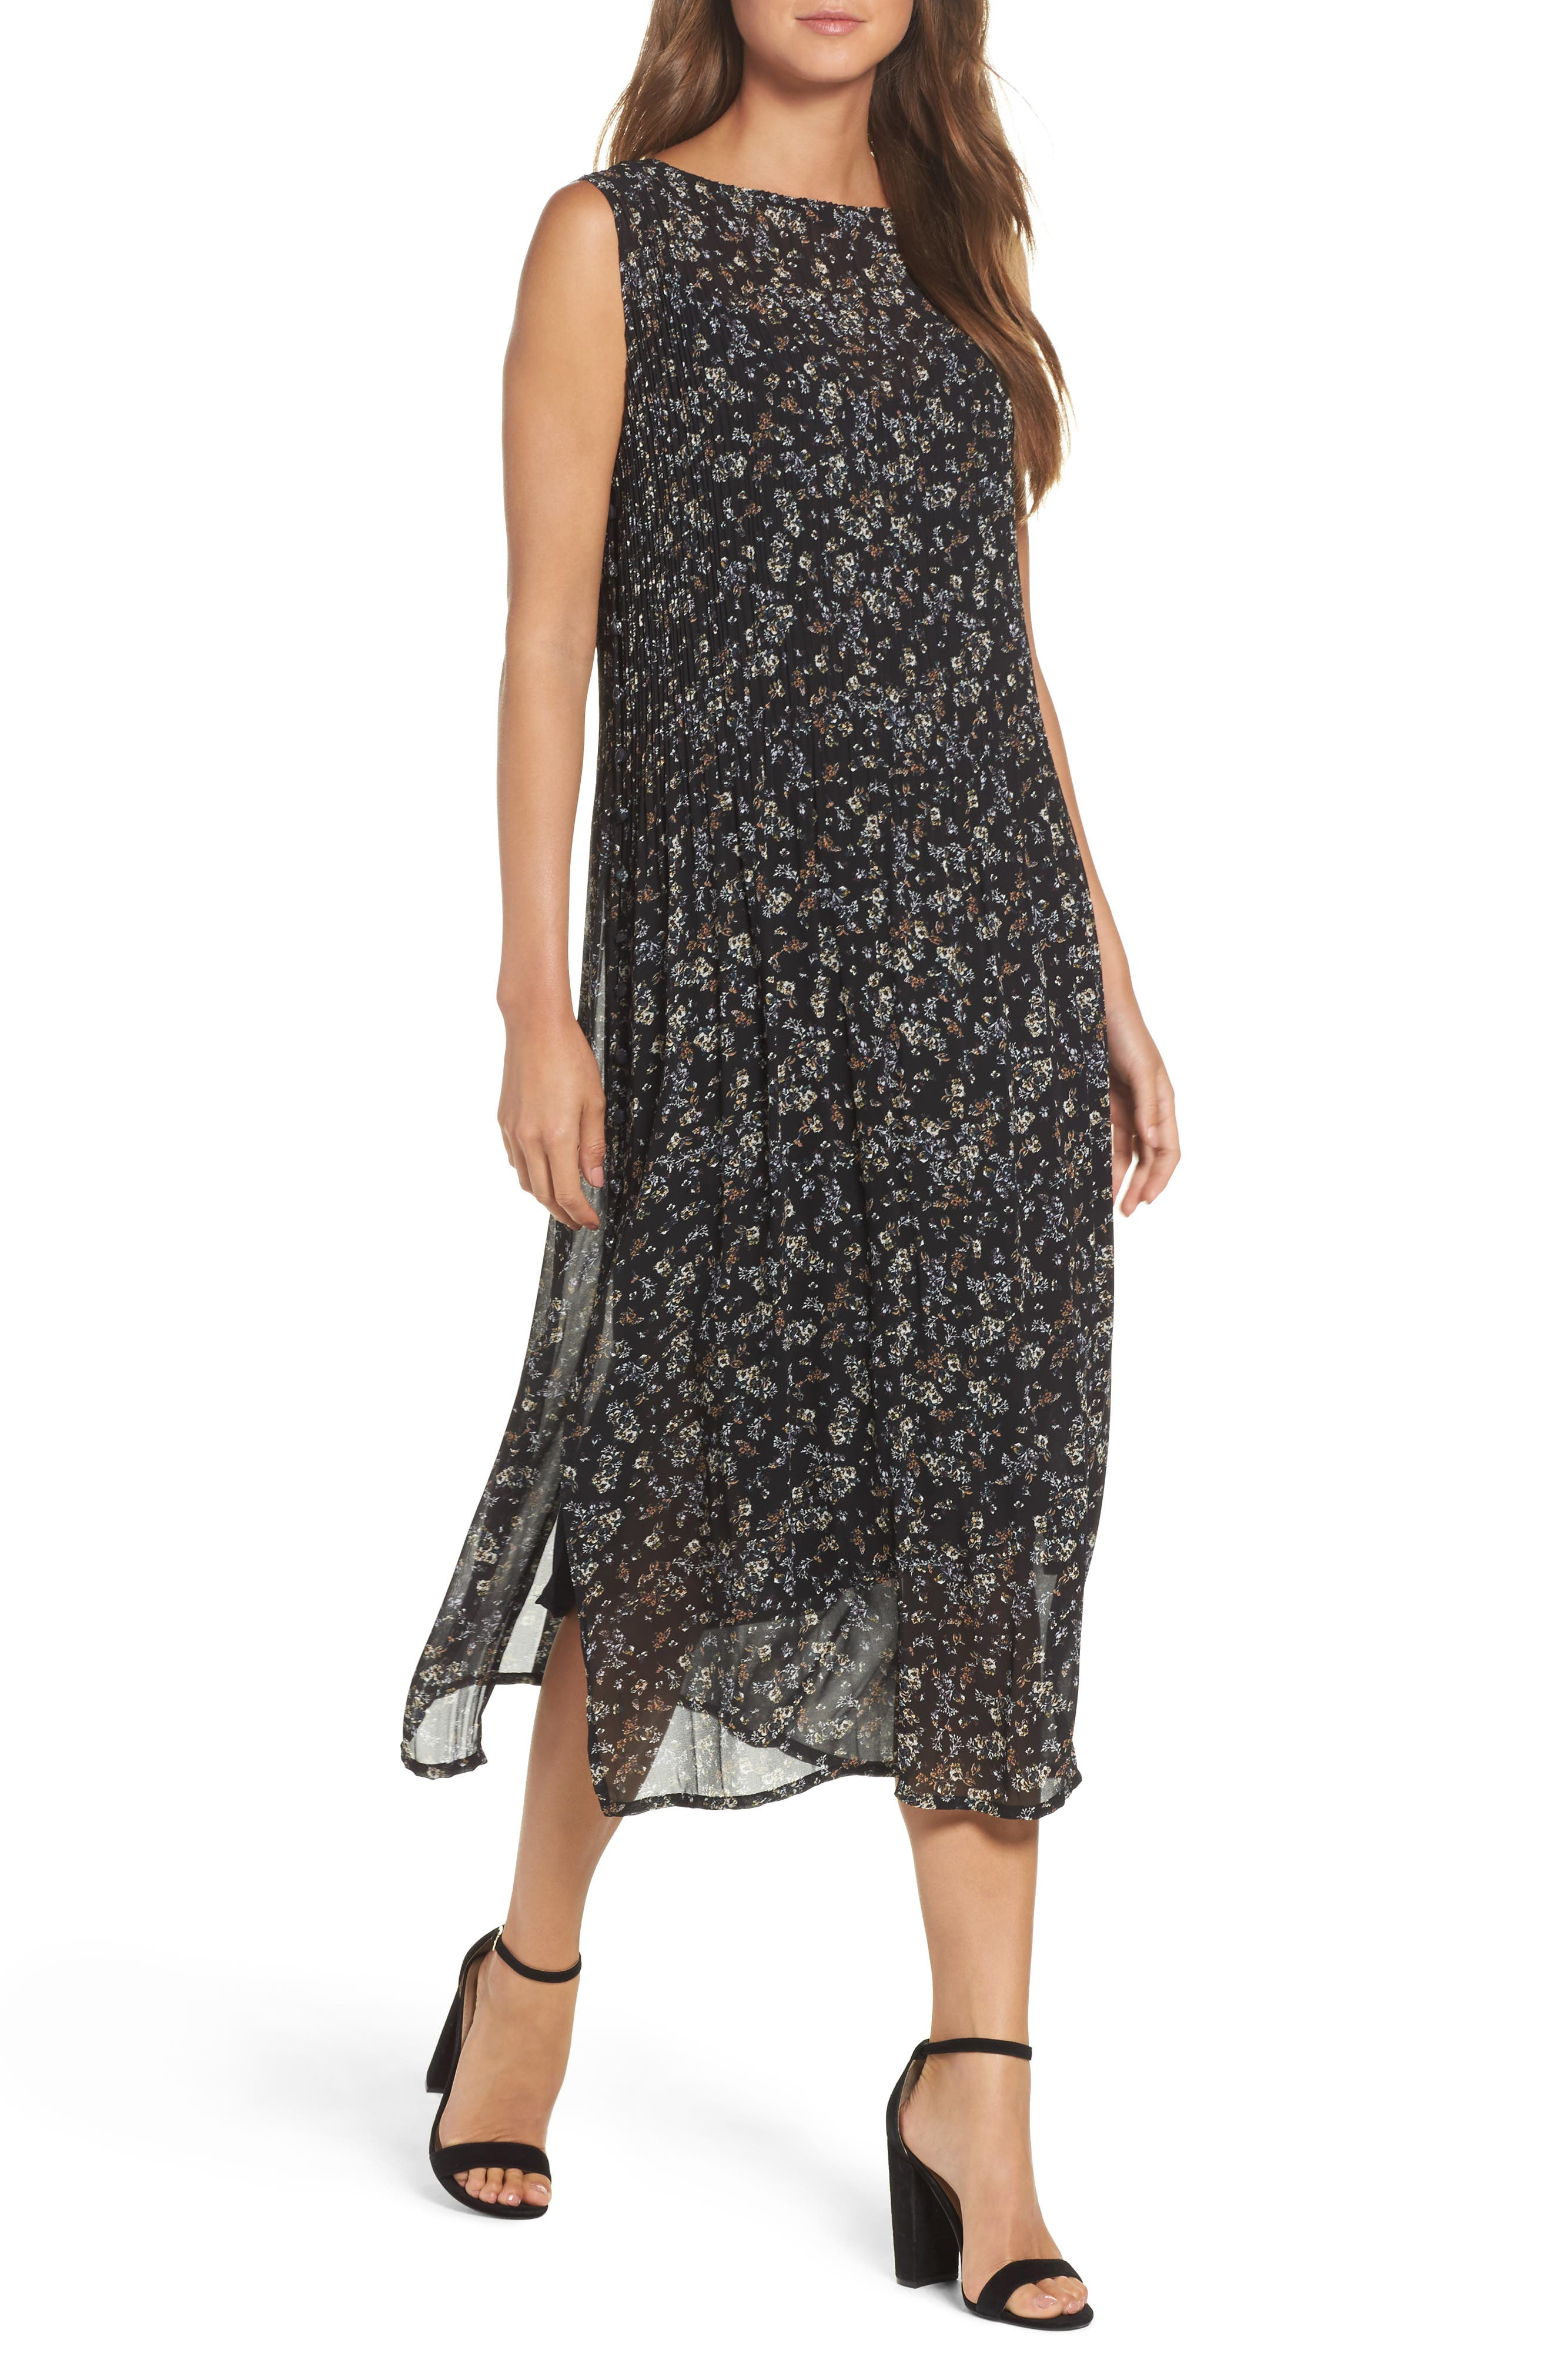 About A Girl Slipdress,                             Main thumbnail 1, color,                             003